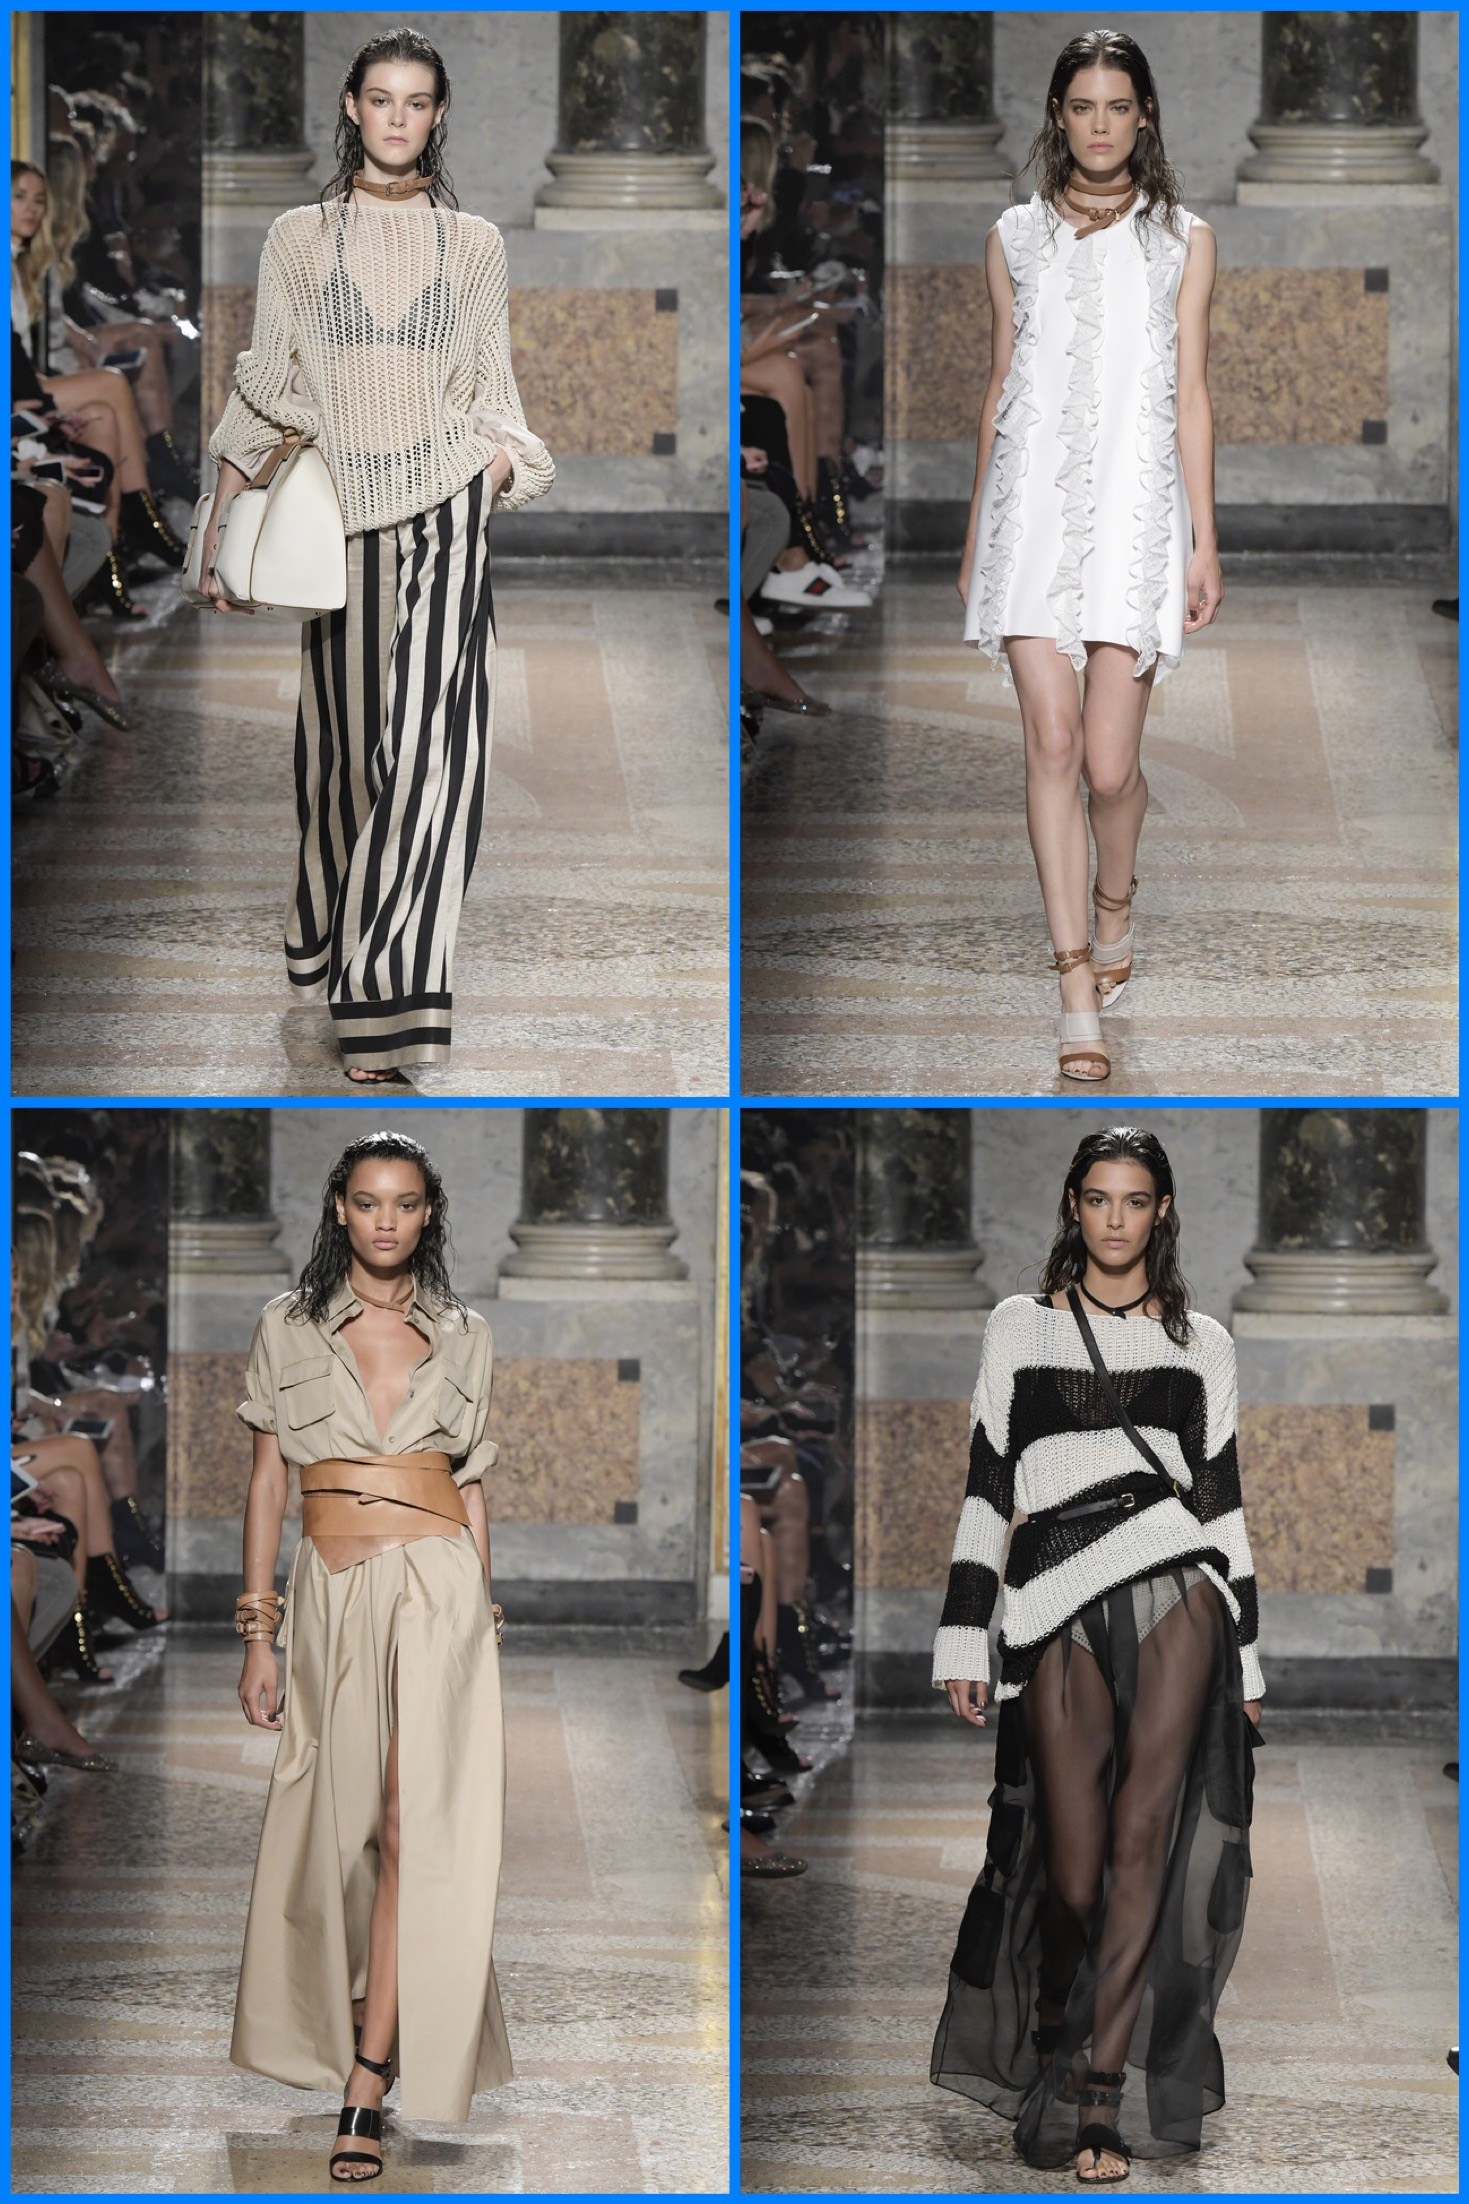 milano-fashion-week-pret-a-porter-spring-summer-2017-style-les-copains